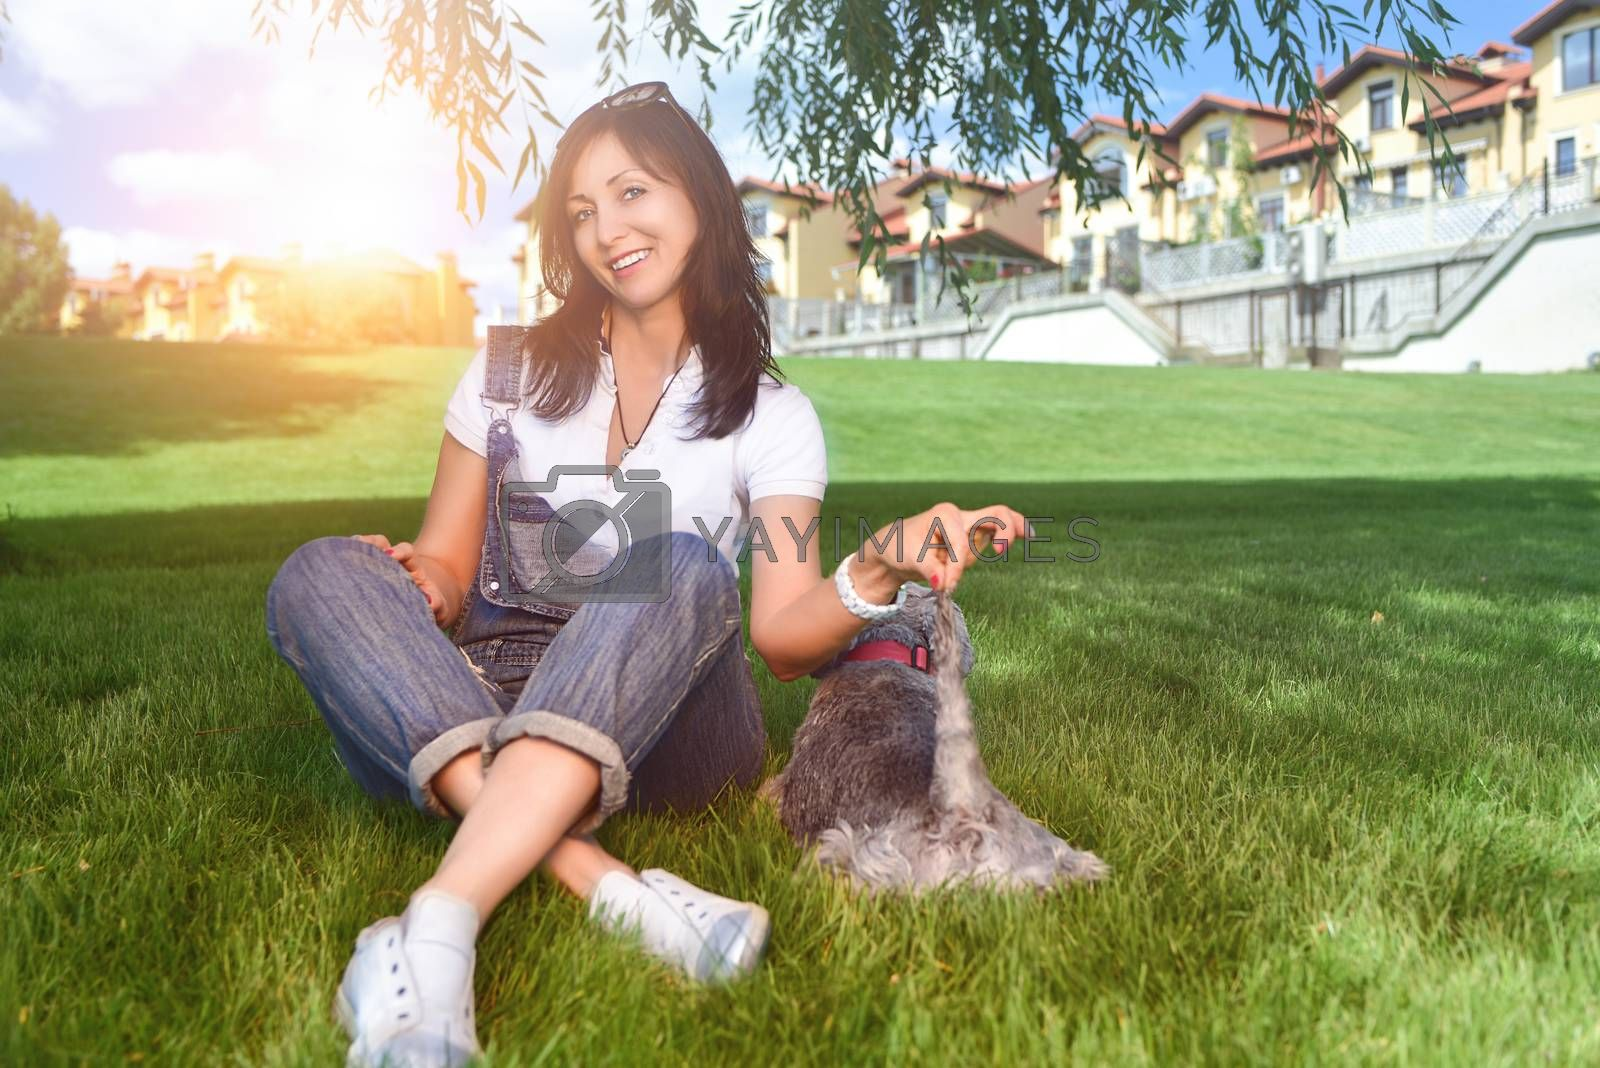 Caucasian joyful woman playing with her beloved dog in the park. The concept of love for animals. best friends. Dog breed Schnauzer